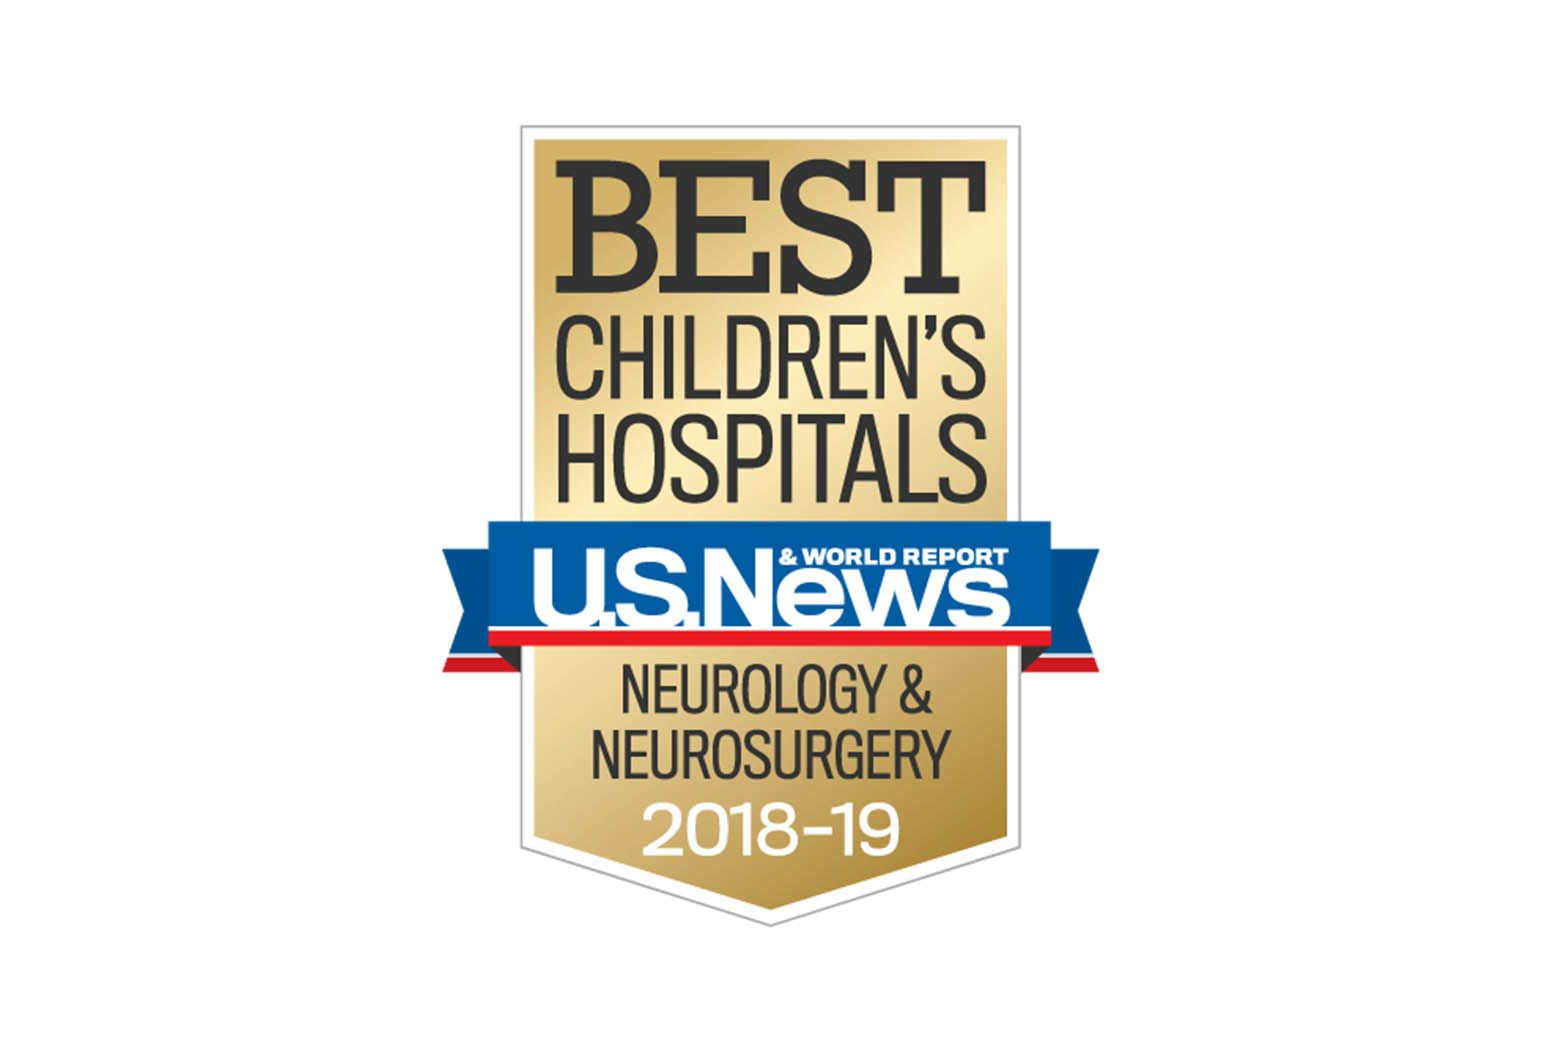 This is an emblem from U.S. New & World Report for best children's hospital for neurology and neurosurgery from 2018-2019.